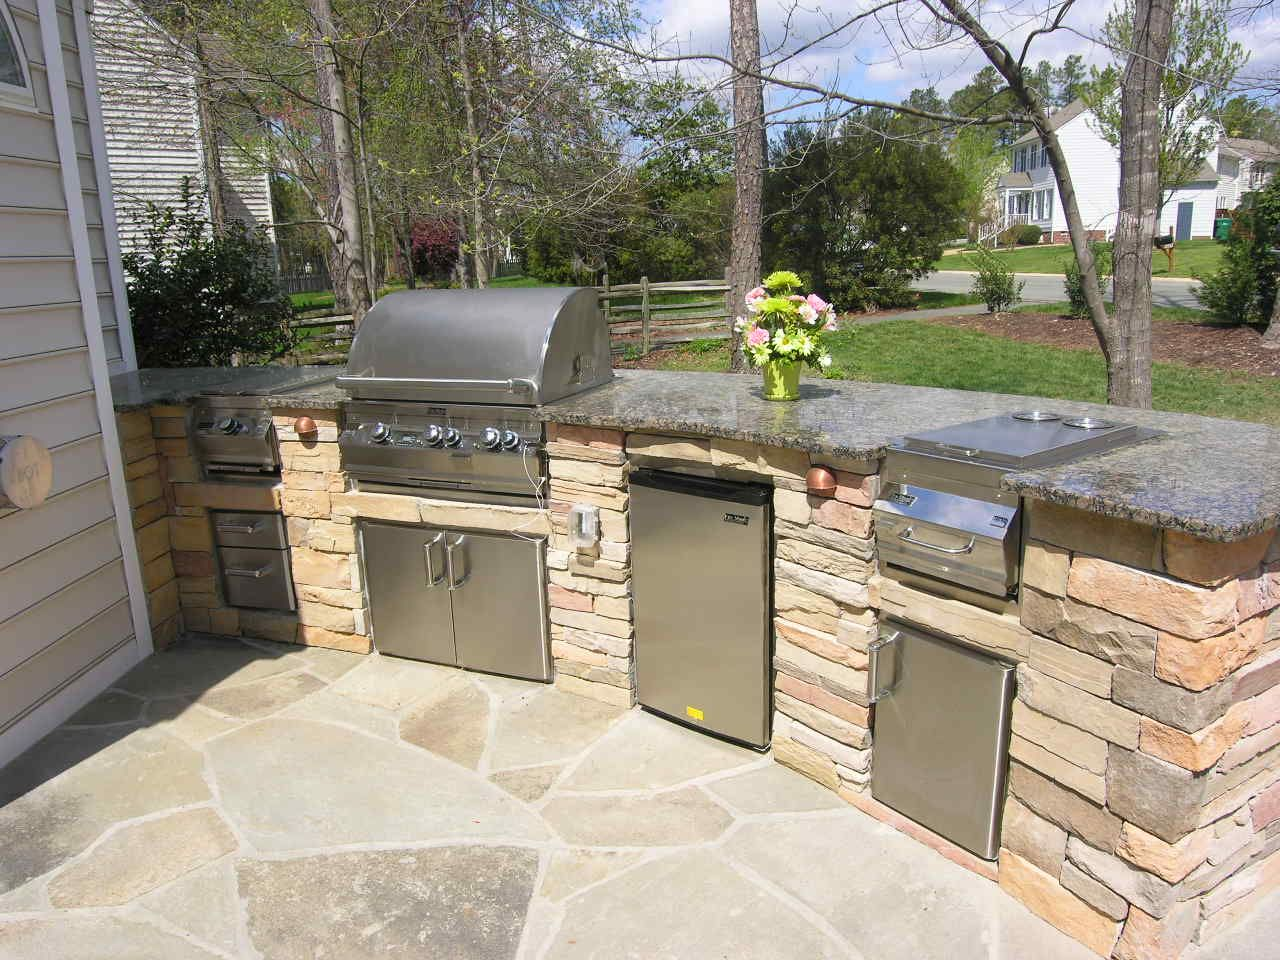 Backyard Patio With Kitchen Ideas This Custom Outdoor Kitchen Design Has Space For Several